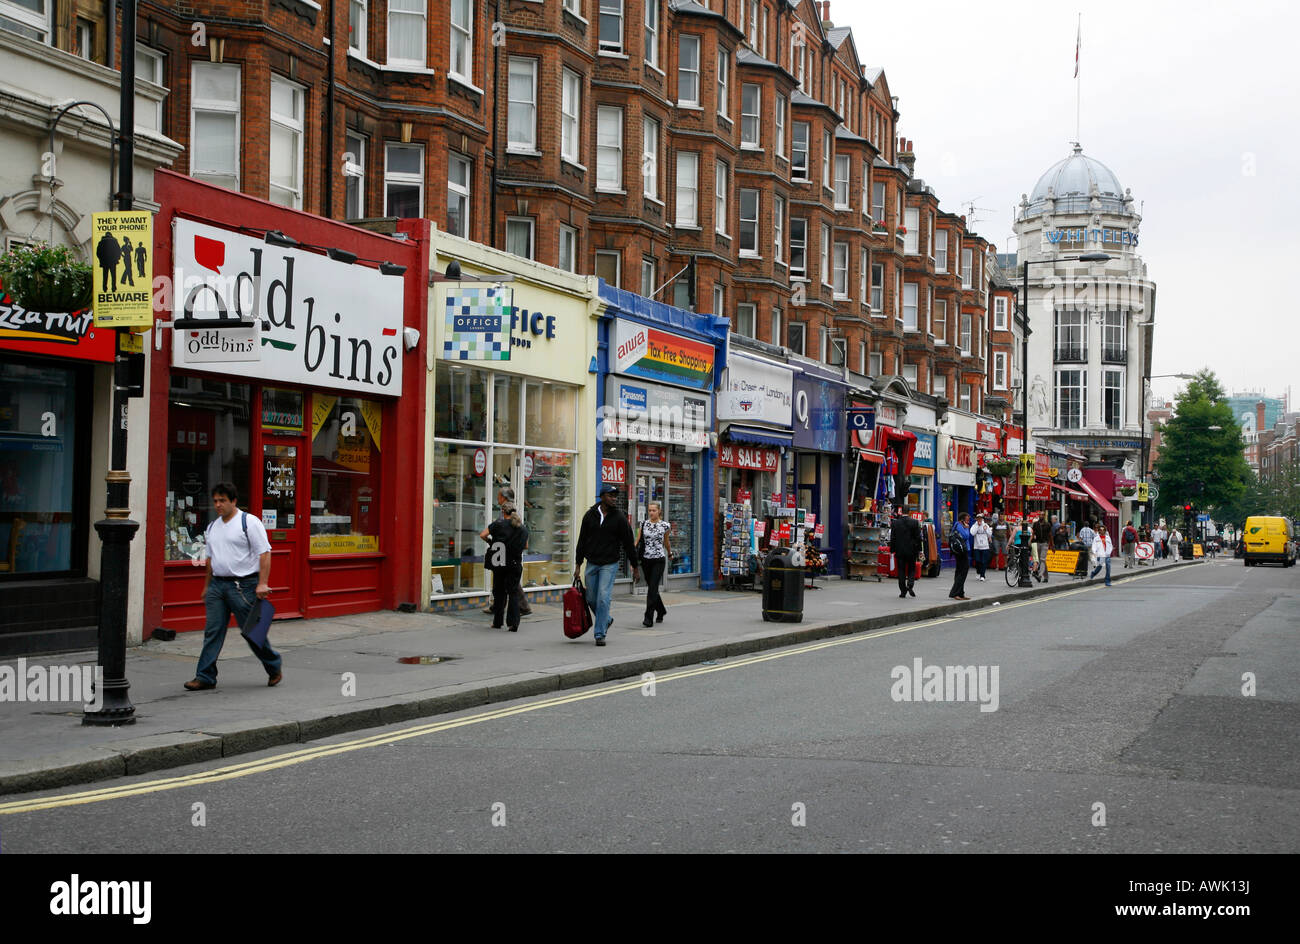 Queensway in bayswater london stock photo 16599221 alamy for The bayswater